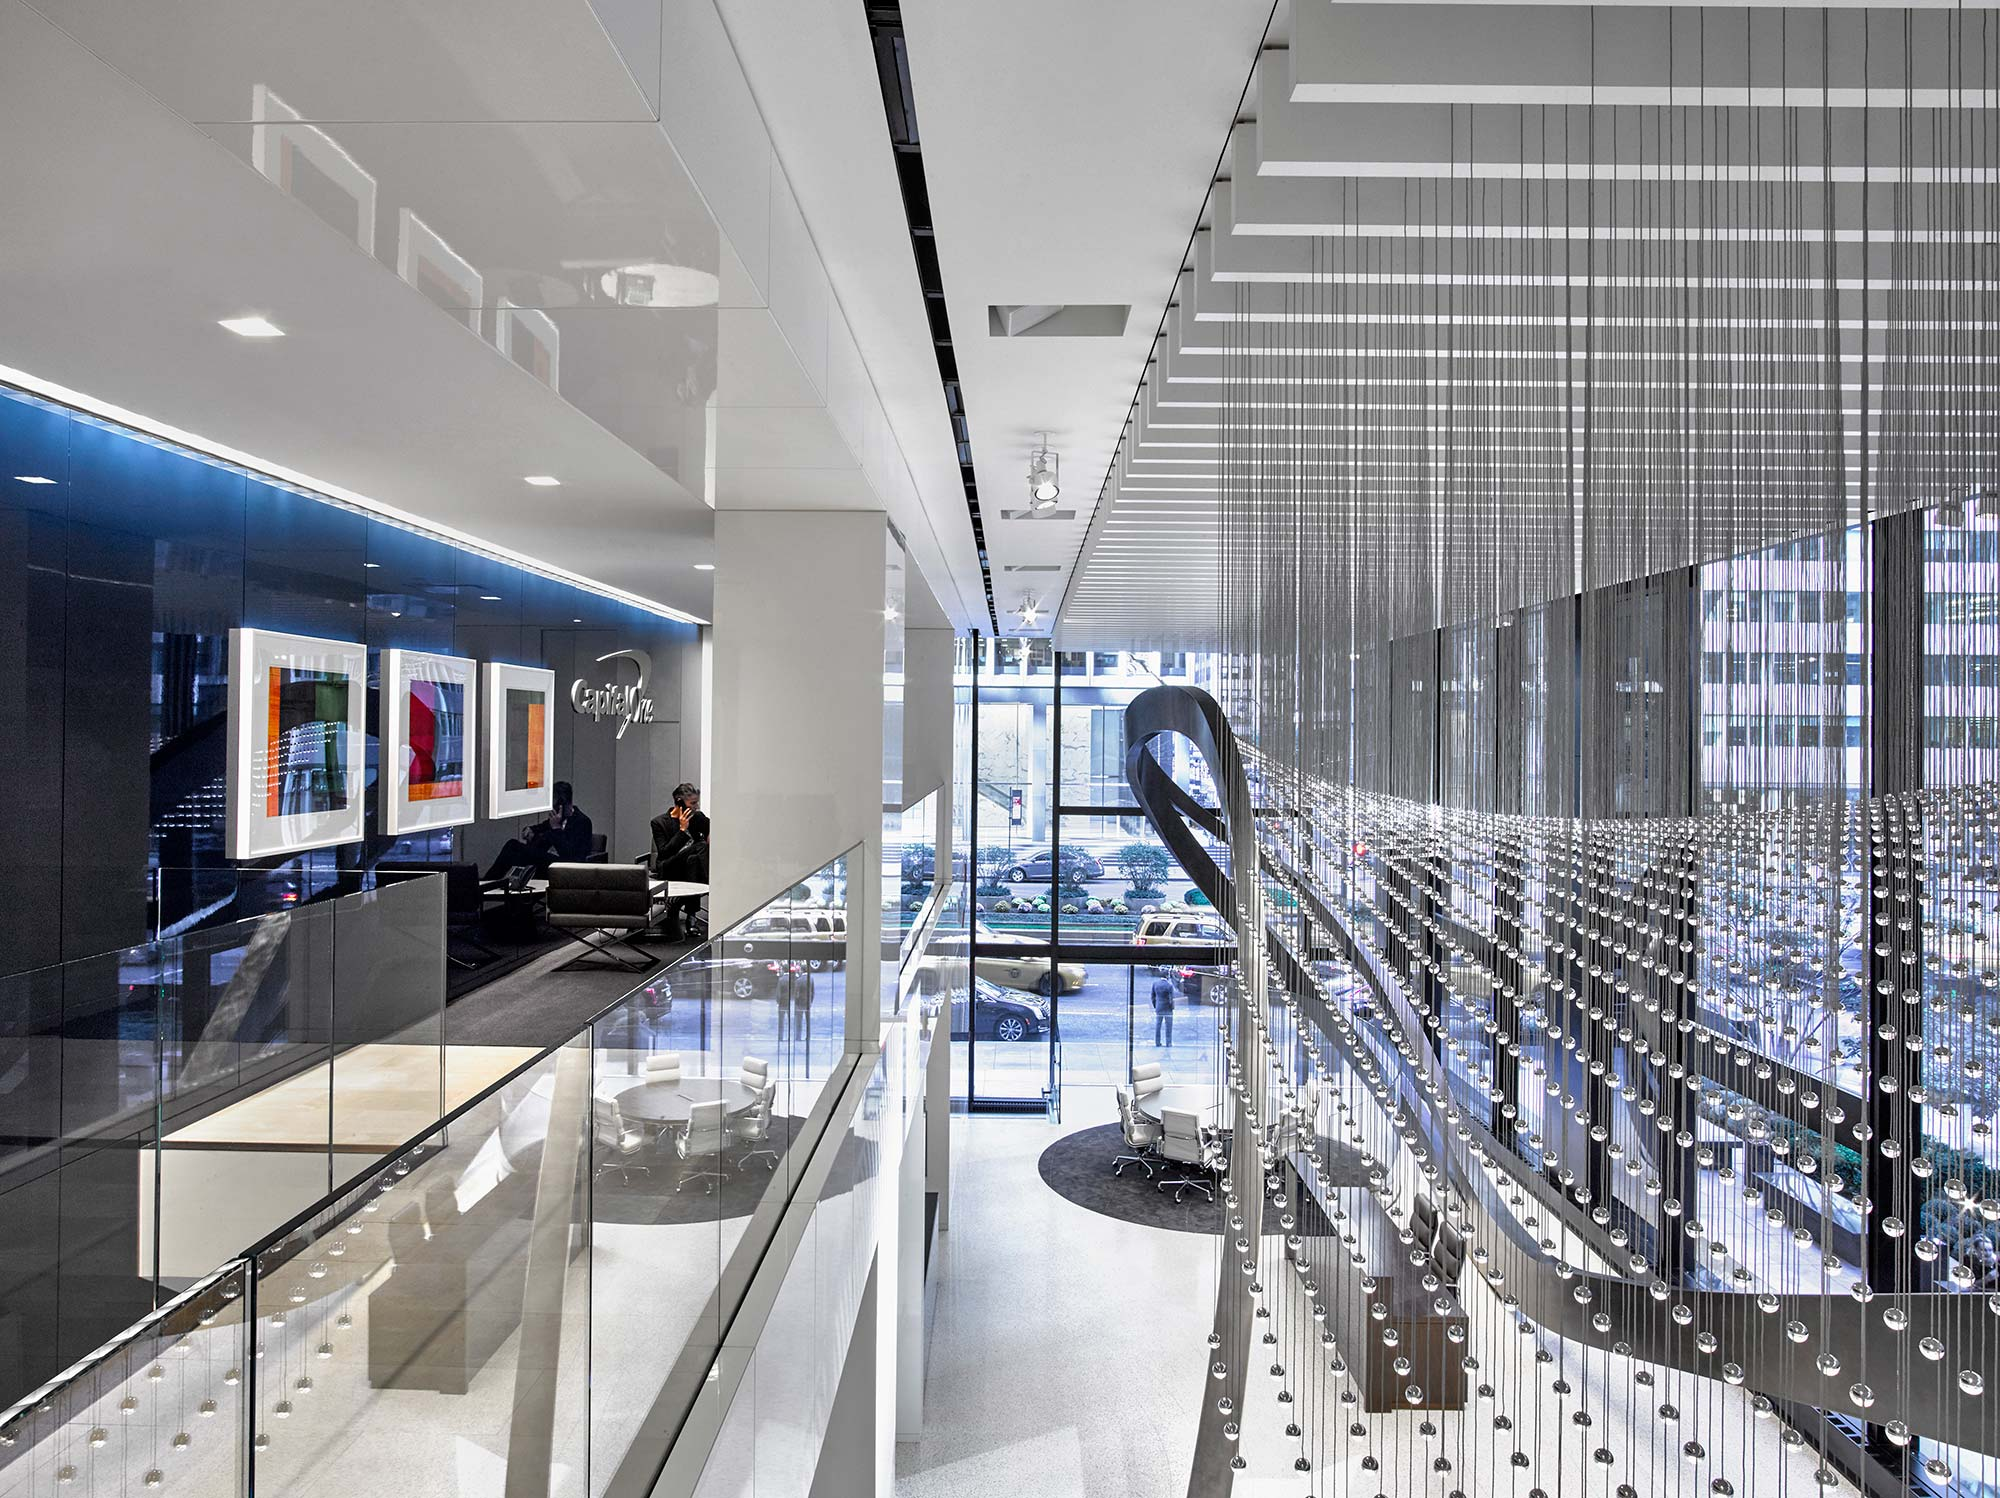 2016 design forecast workplace gensler for Architecture companies in nyc